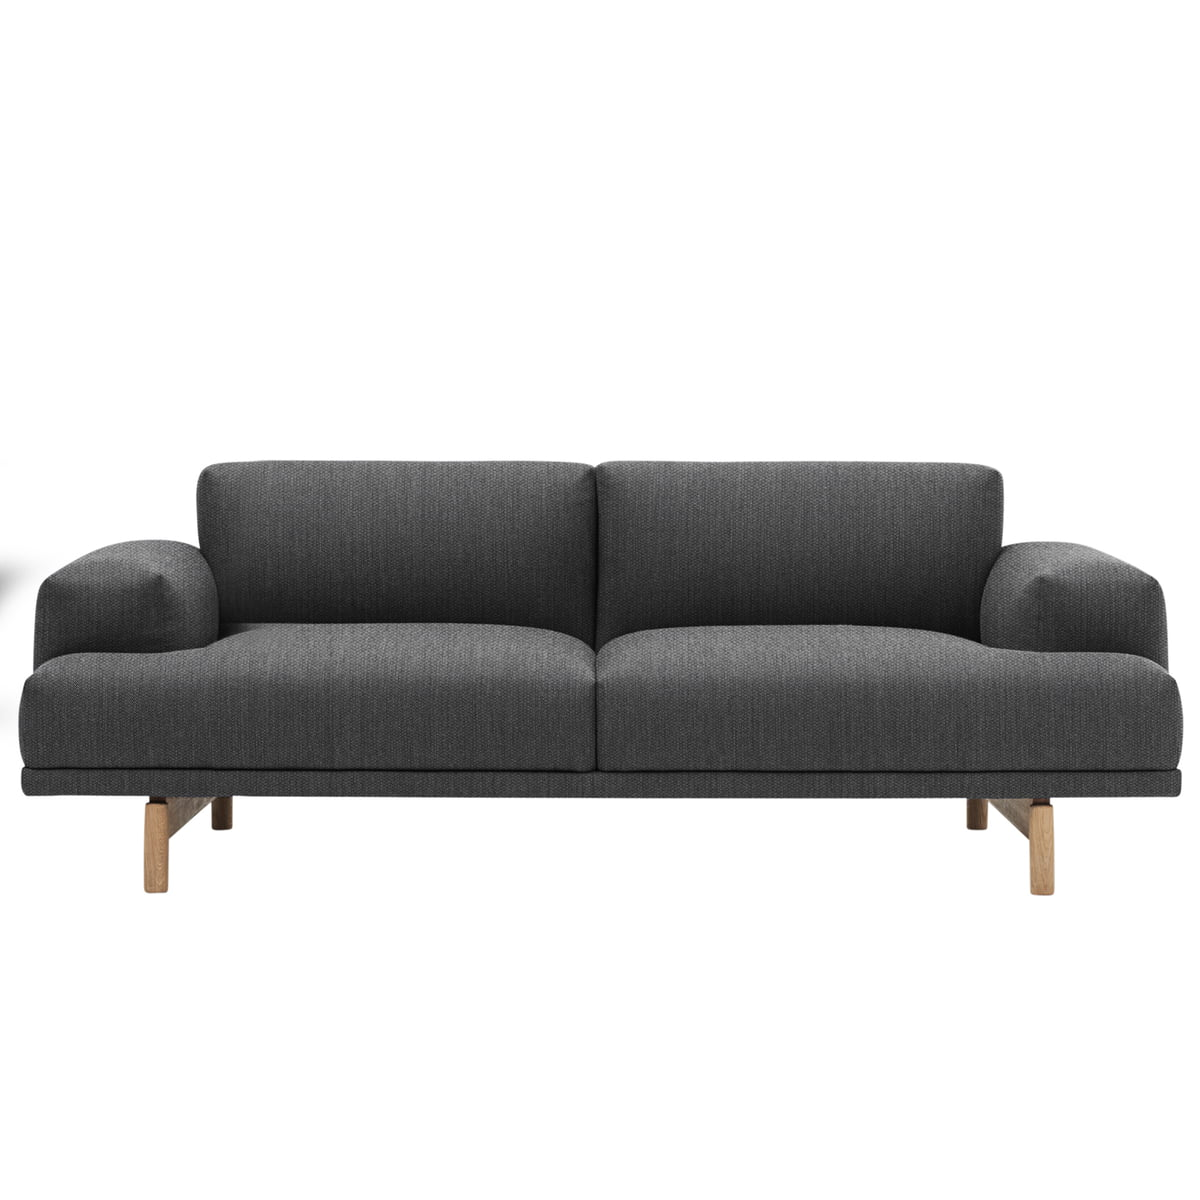 Compose Sofa, 2-seater by Muuto in the shop